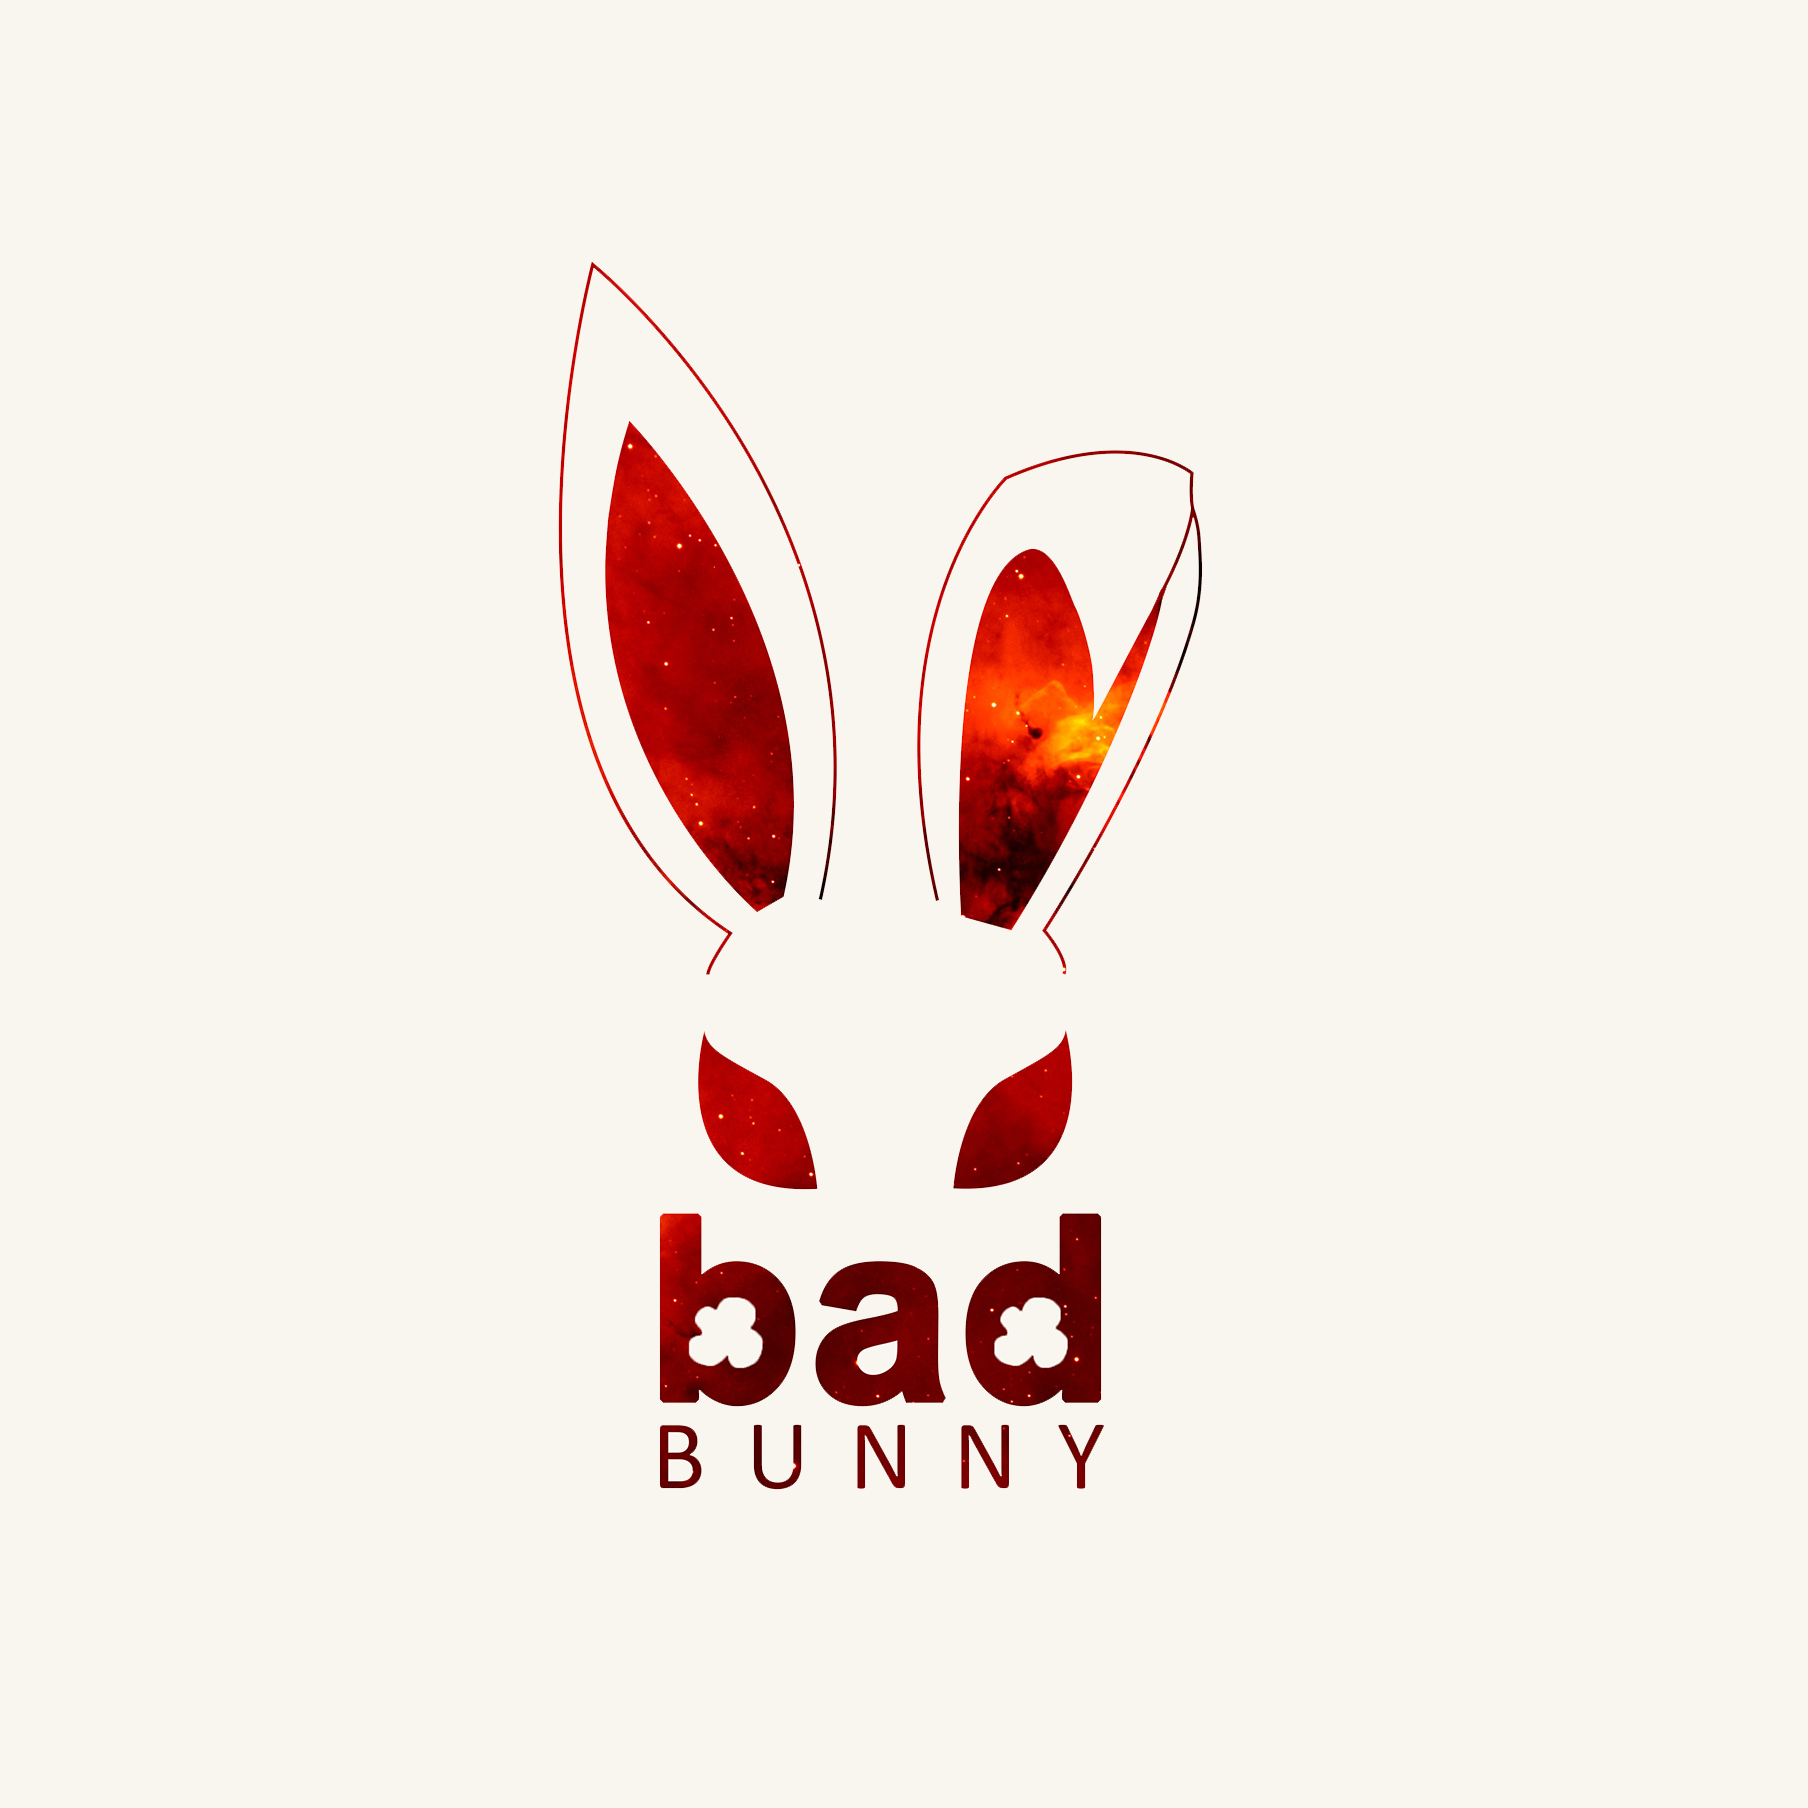 Bad design logo bad bunny logo